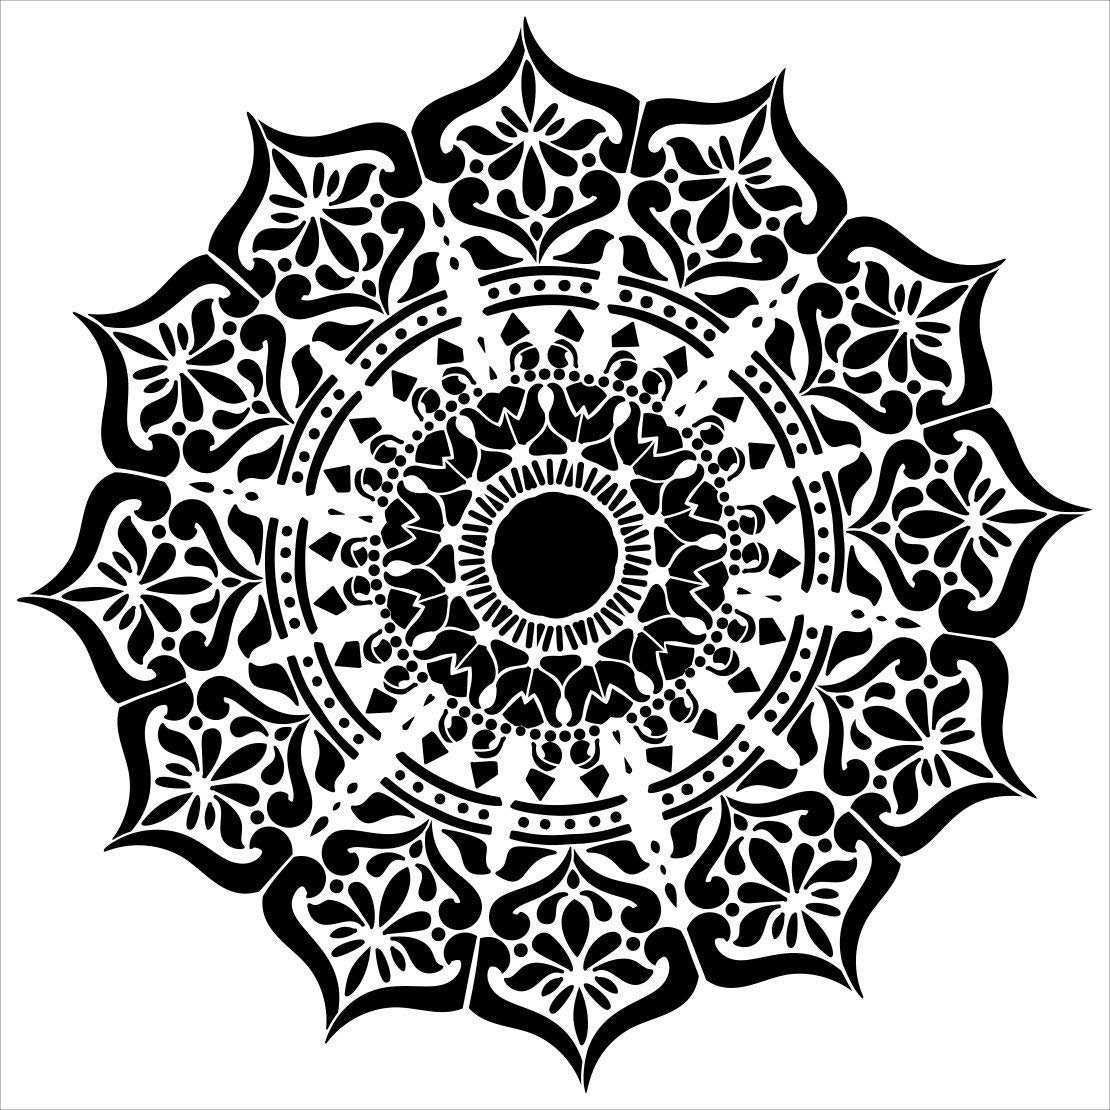 Mandala - India Stencil by StudioR12 | Reusable Mylar Template | Use to Paint Wood Signs - Pallets - Pillows - Wall Art - Floor Tile - Select Size